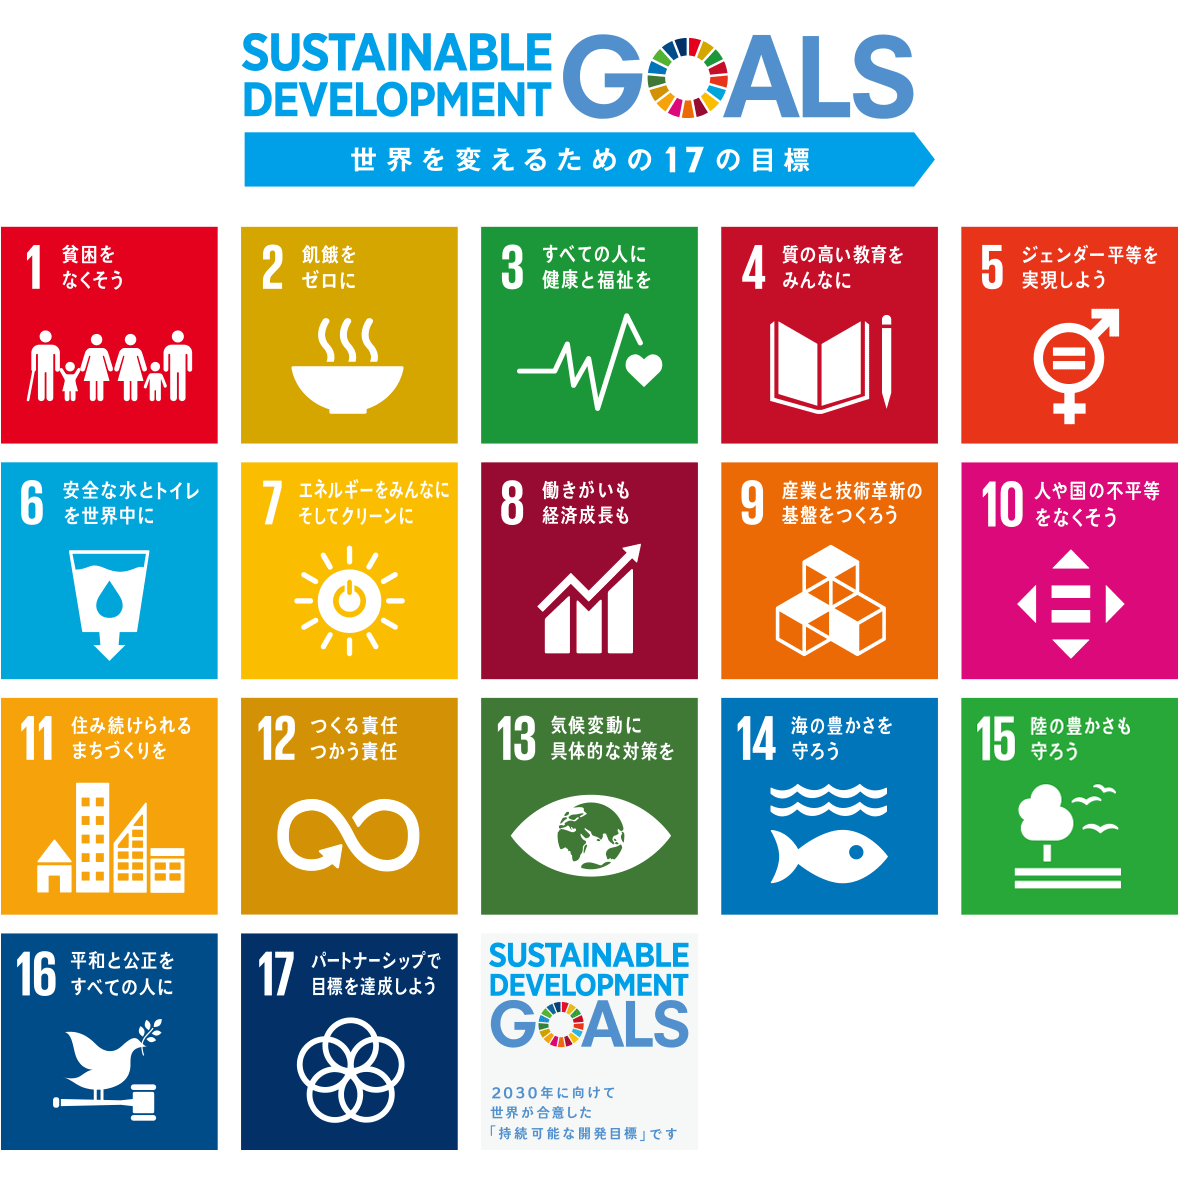 「Sustainable Development Goals(持続可能な開発目標)」